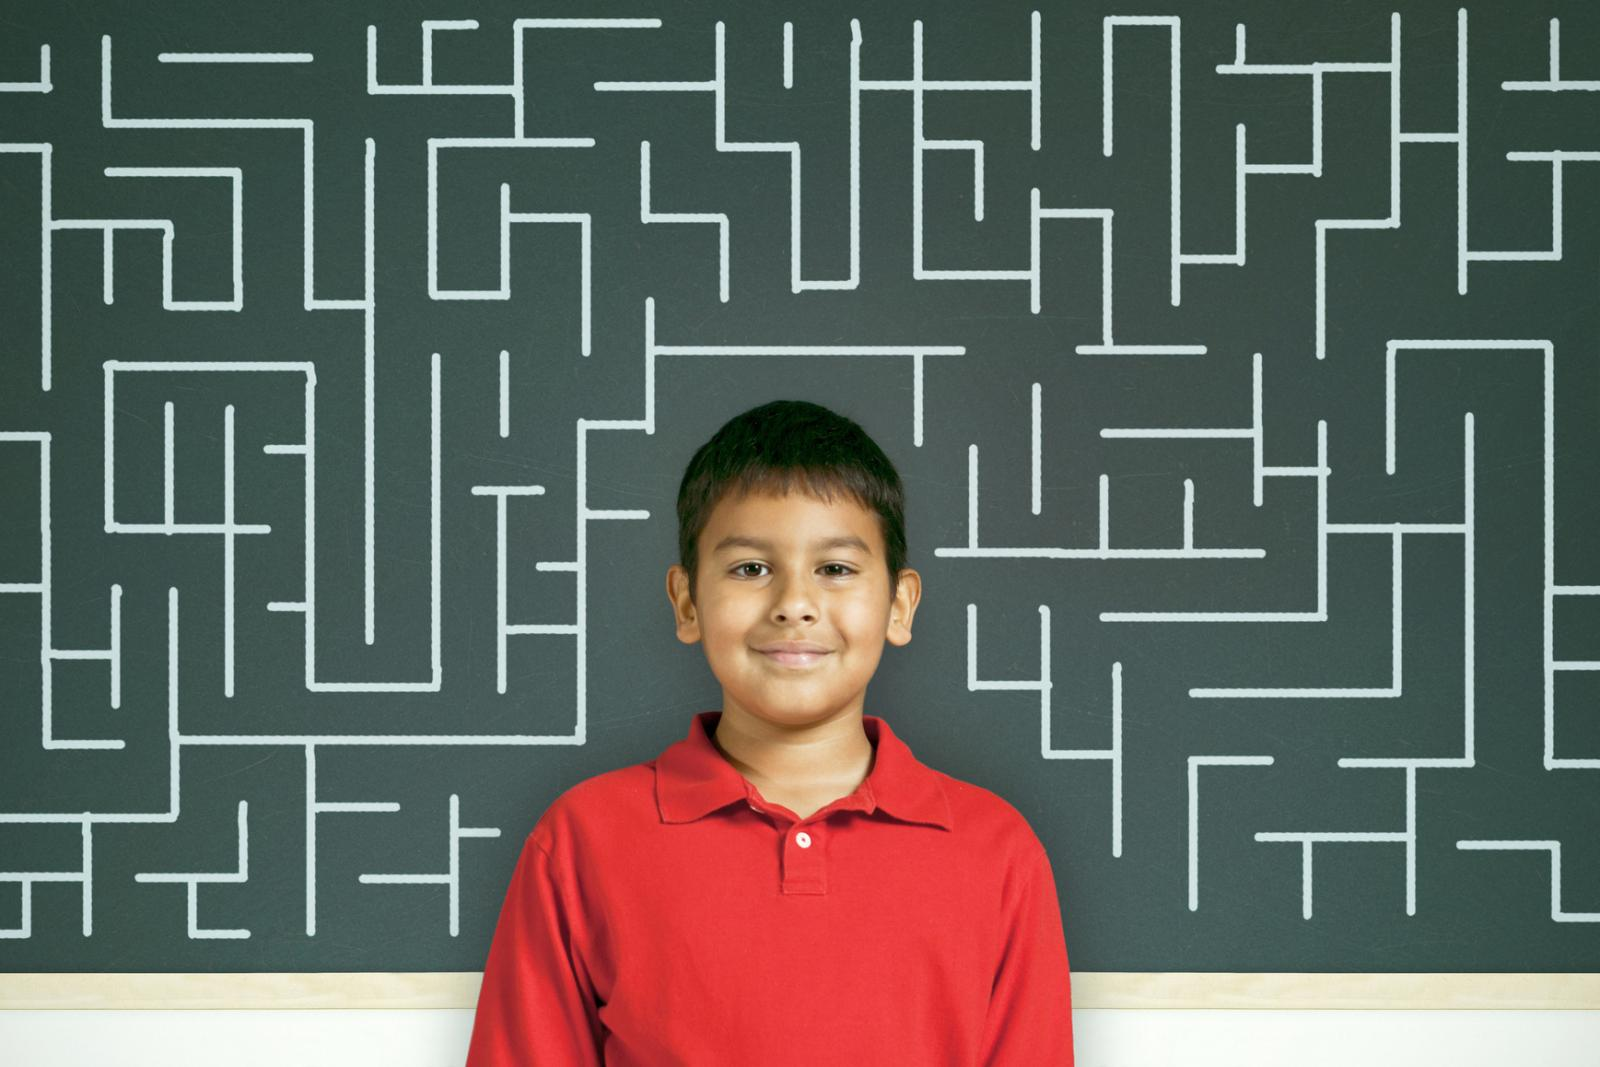 Child by chalkboard with maze